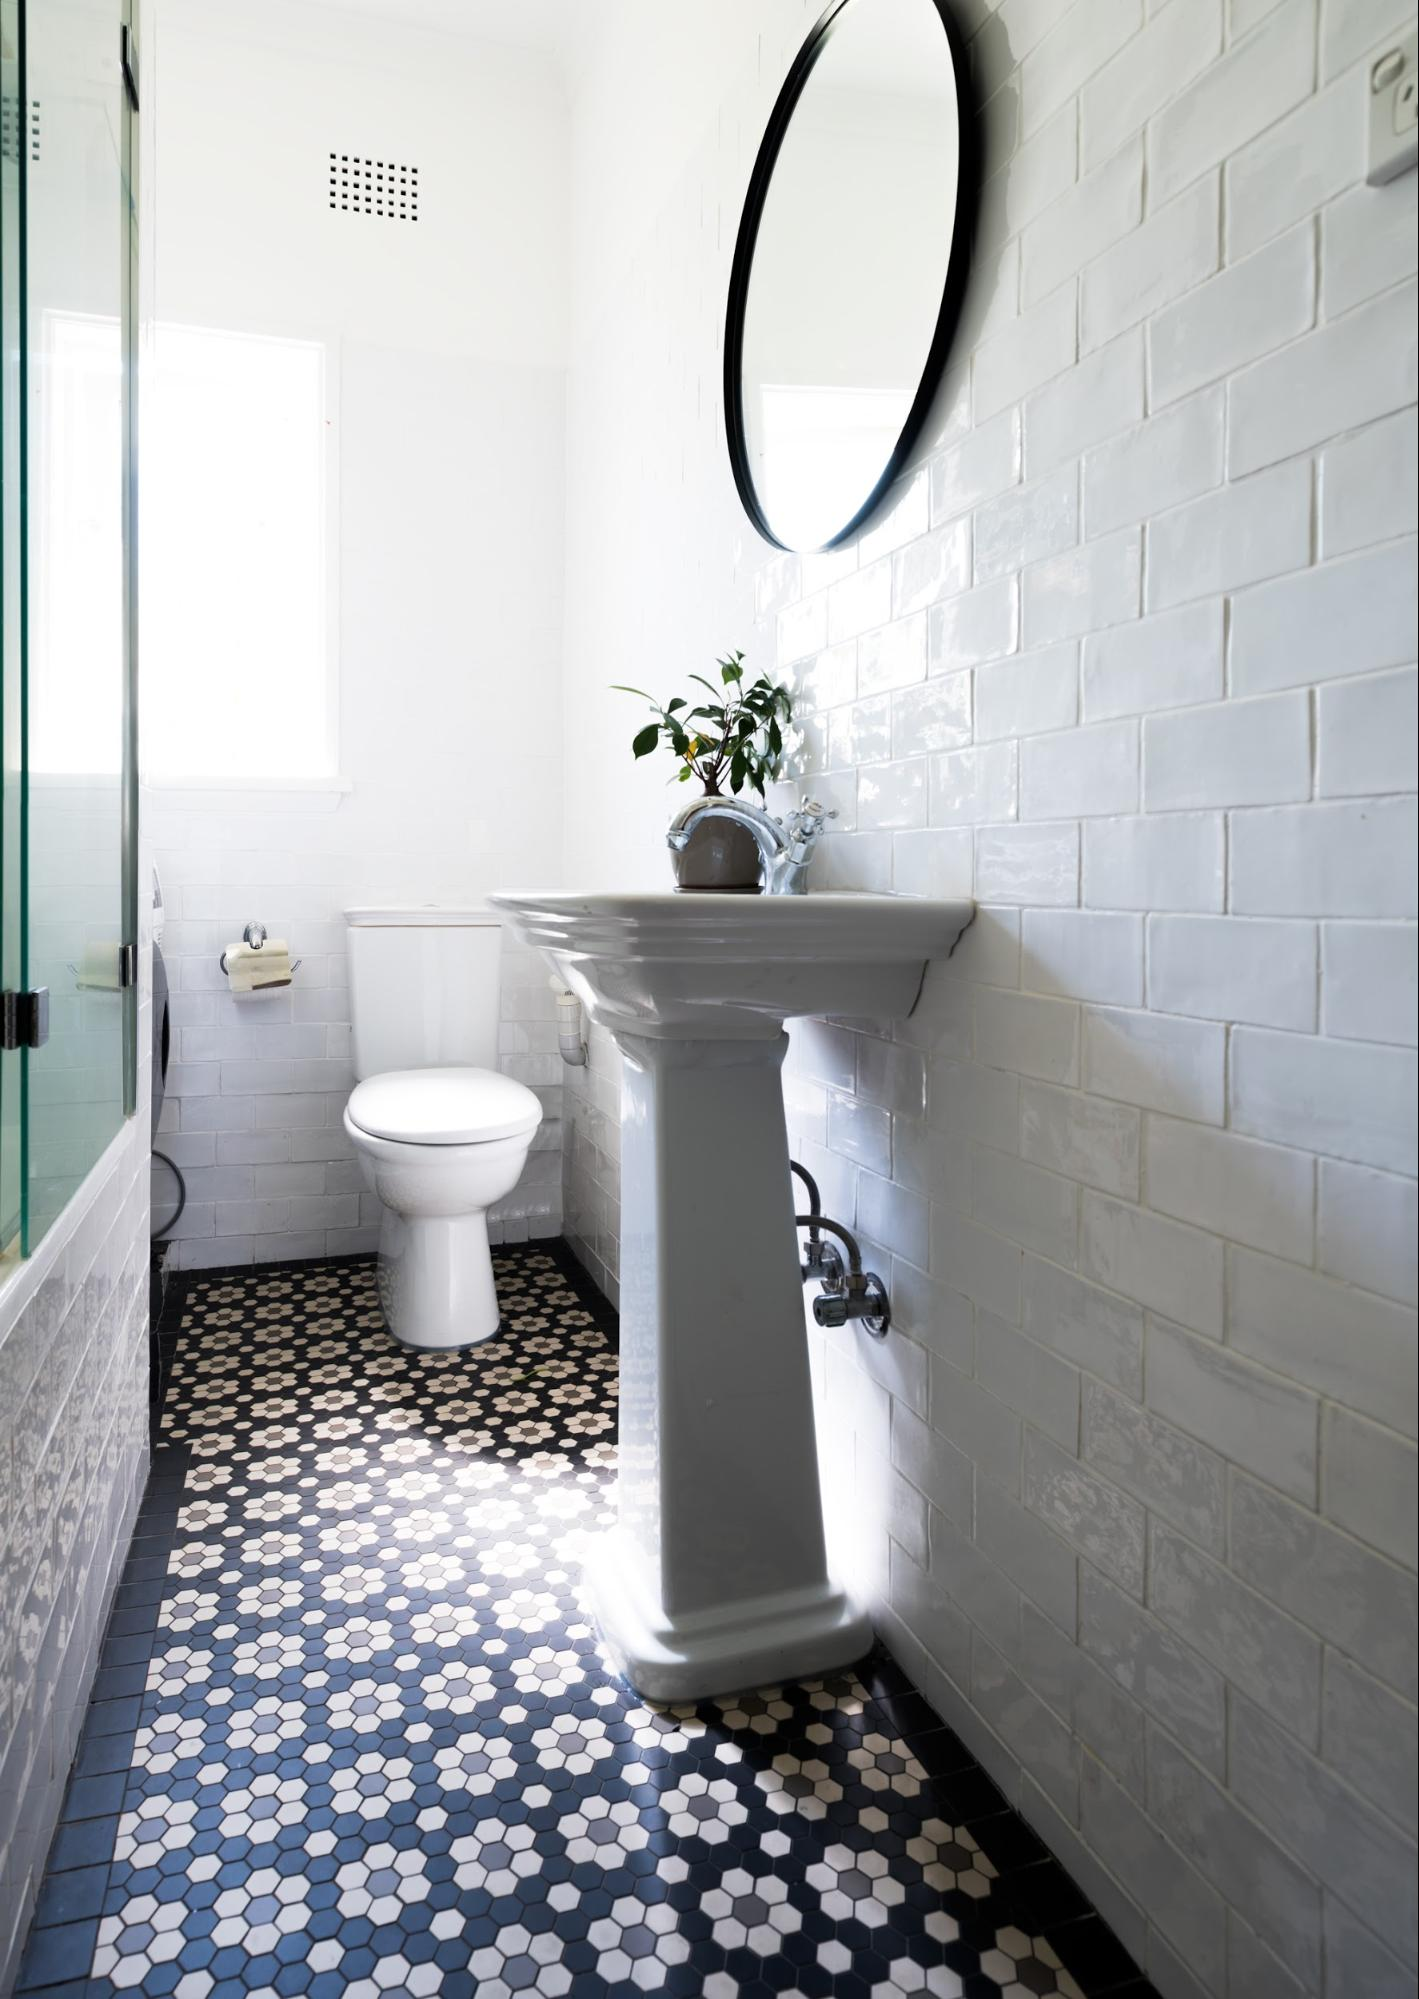 Mosaic Tiles A How To Guide Olde English Tiles